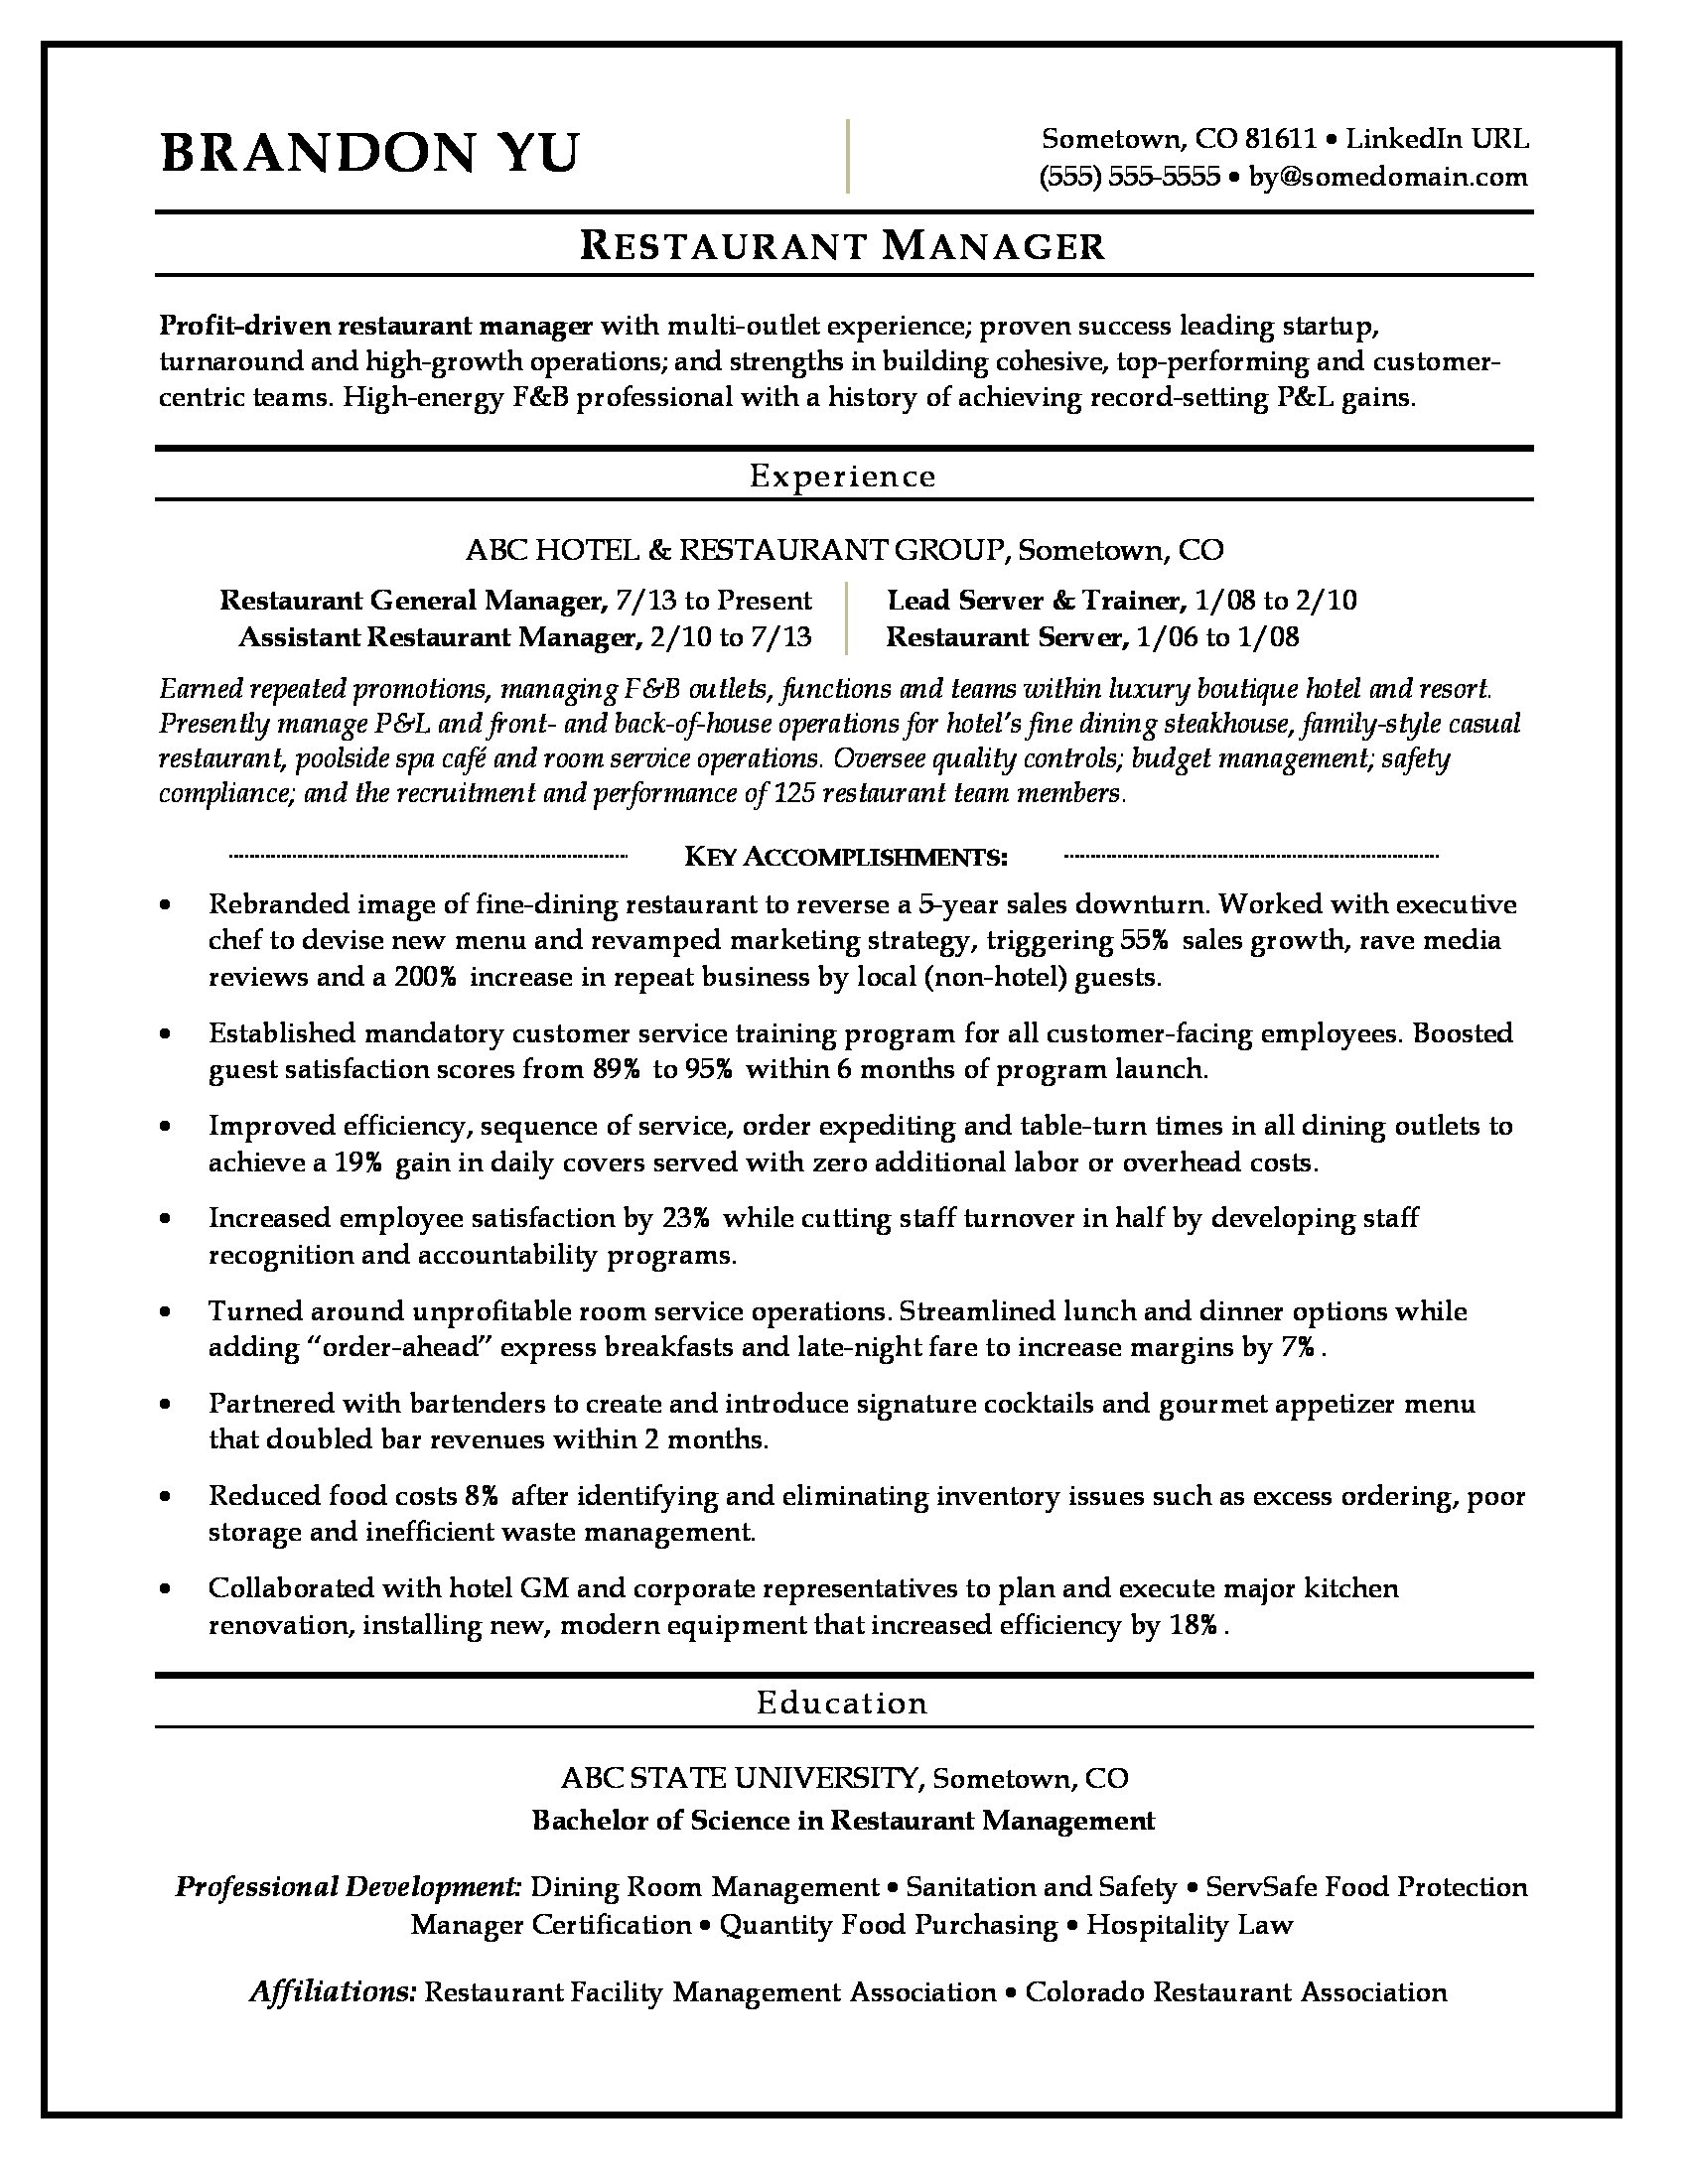 Restaurant manager resume sample monster sample resume for a restaurant manager yelopaper Image collections